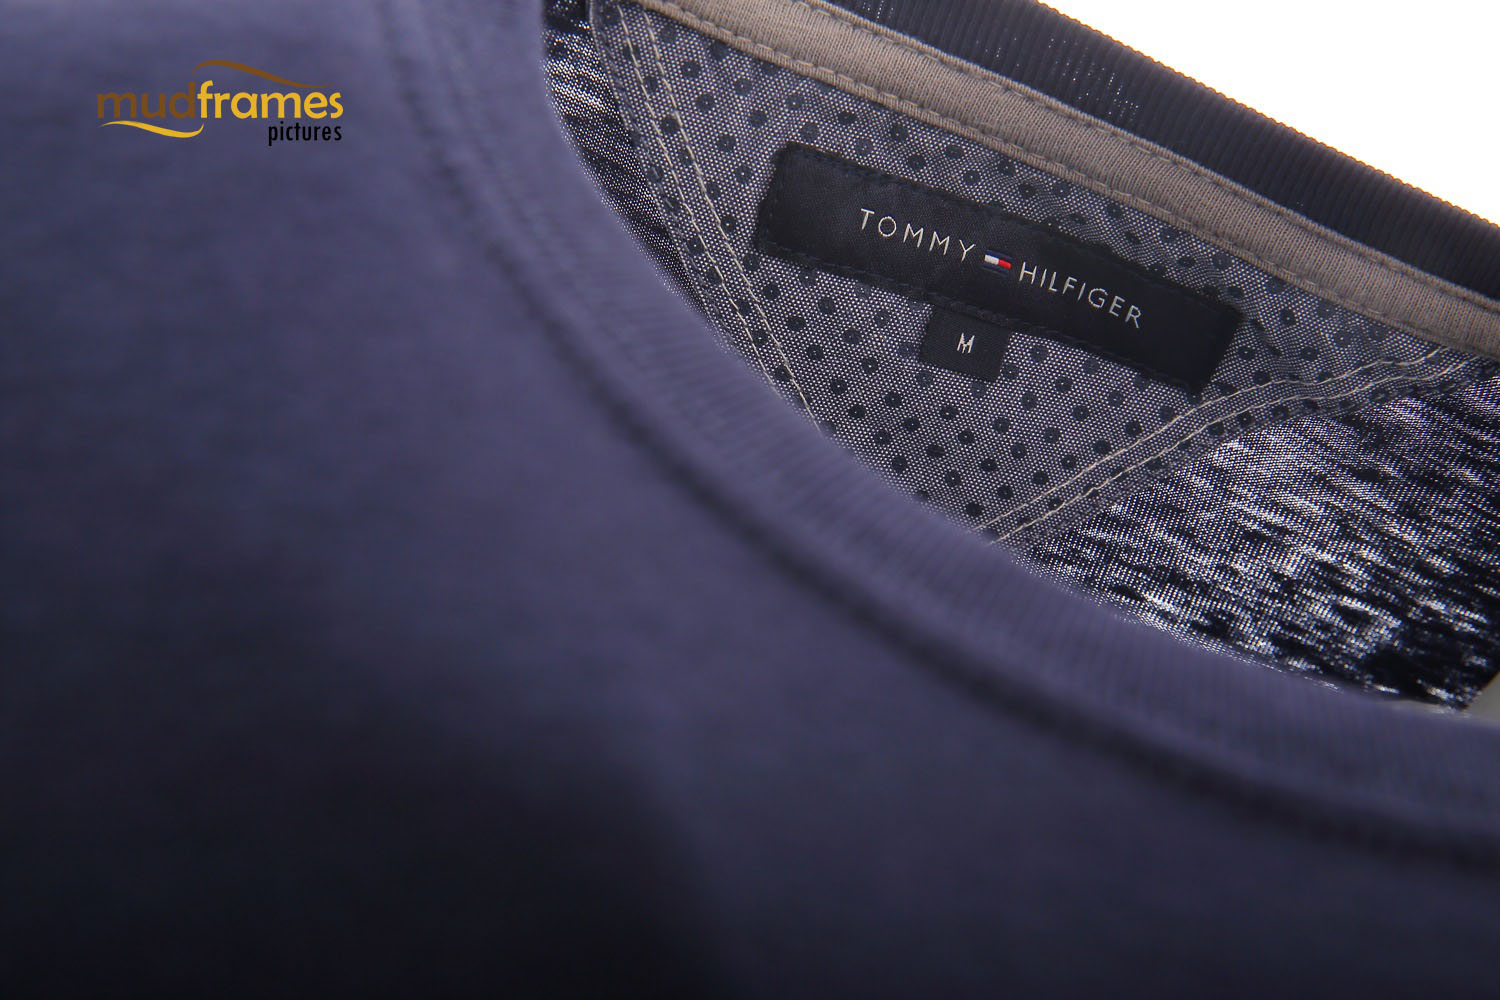 Tommy Hilfiger shirt on white background